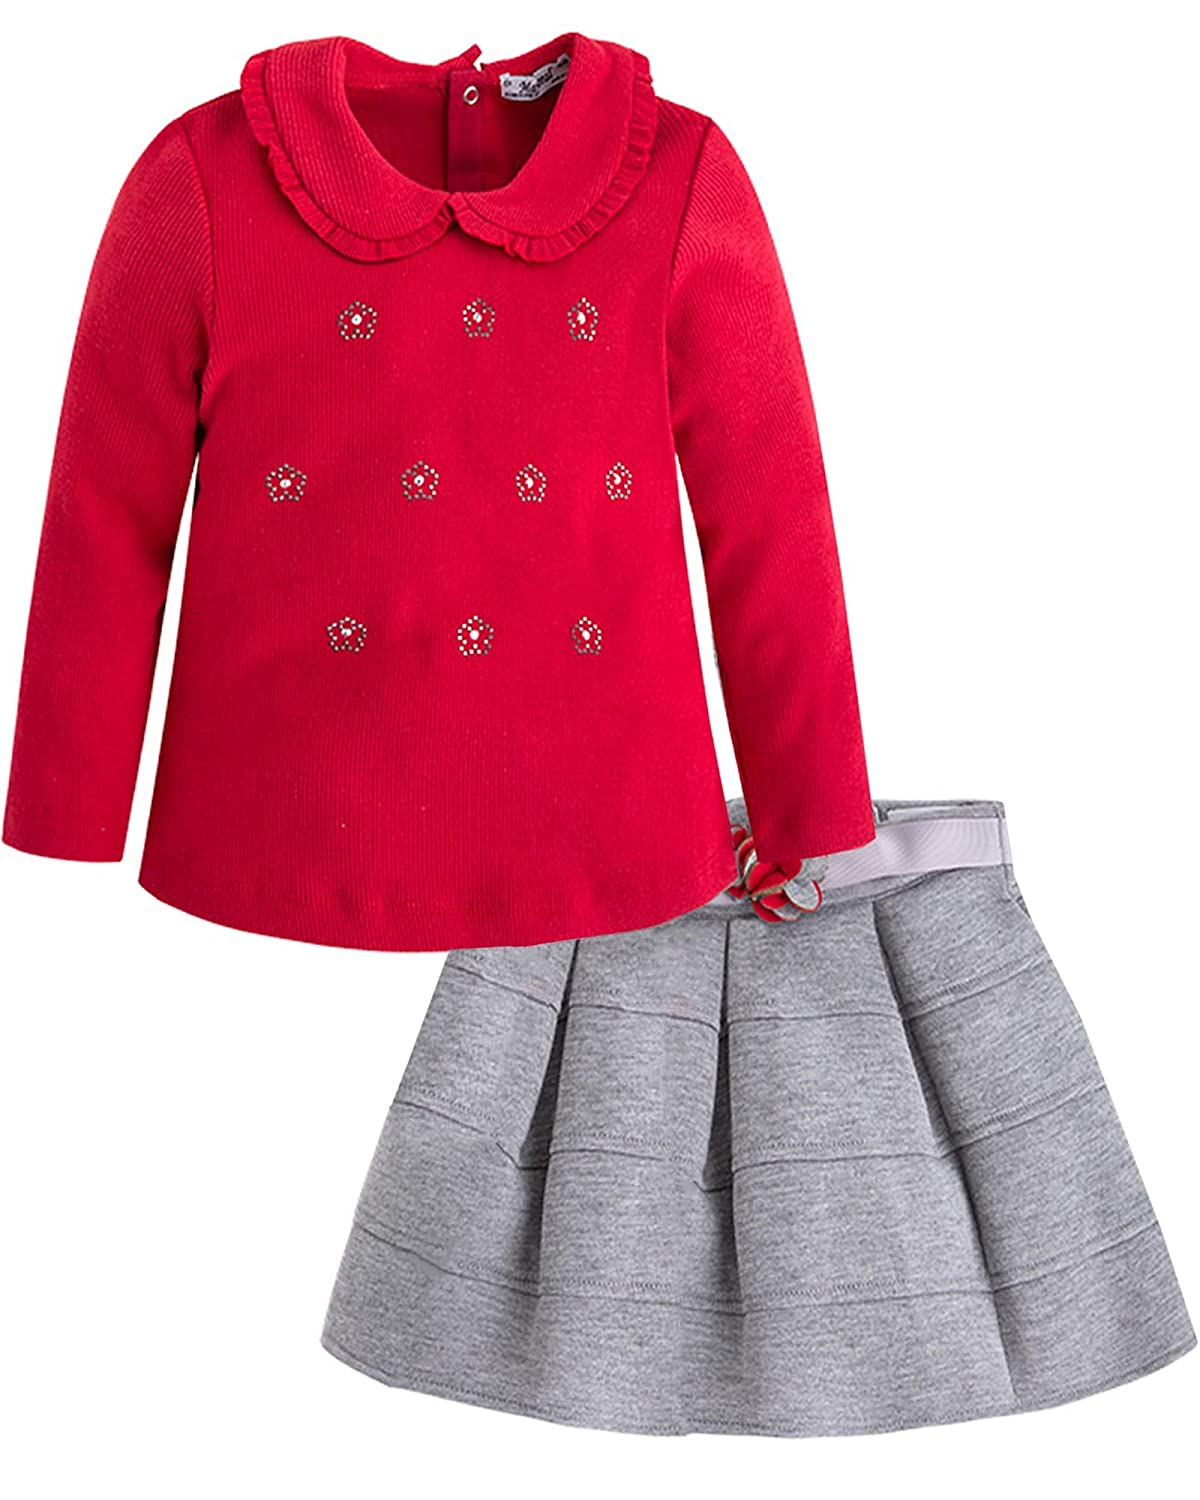 Mayoral Girl's Top and Pleated Skirt Set, Sizes 2-9 Sizes 2-9 - 7